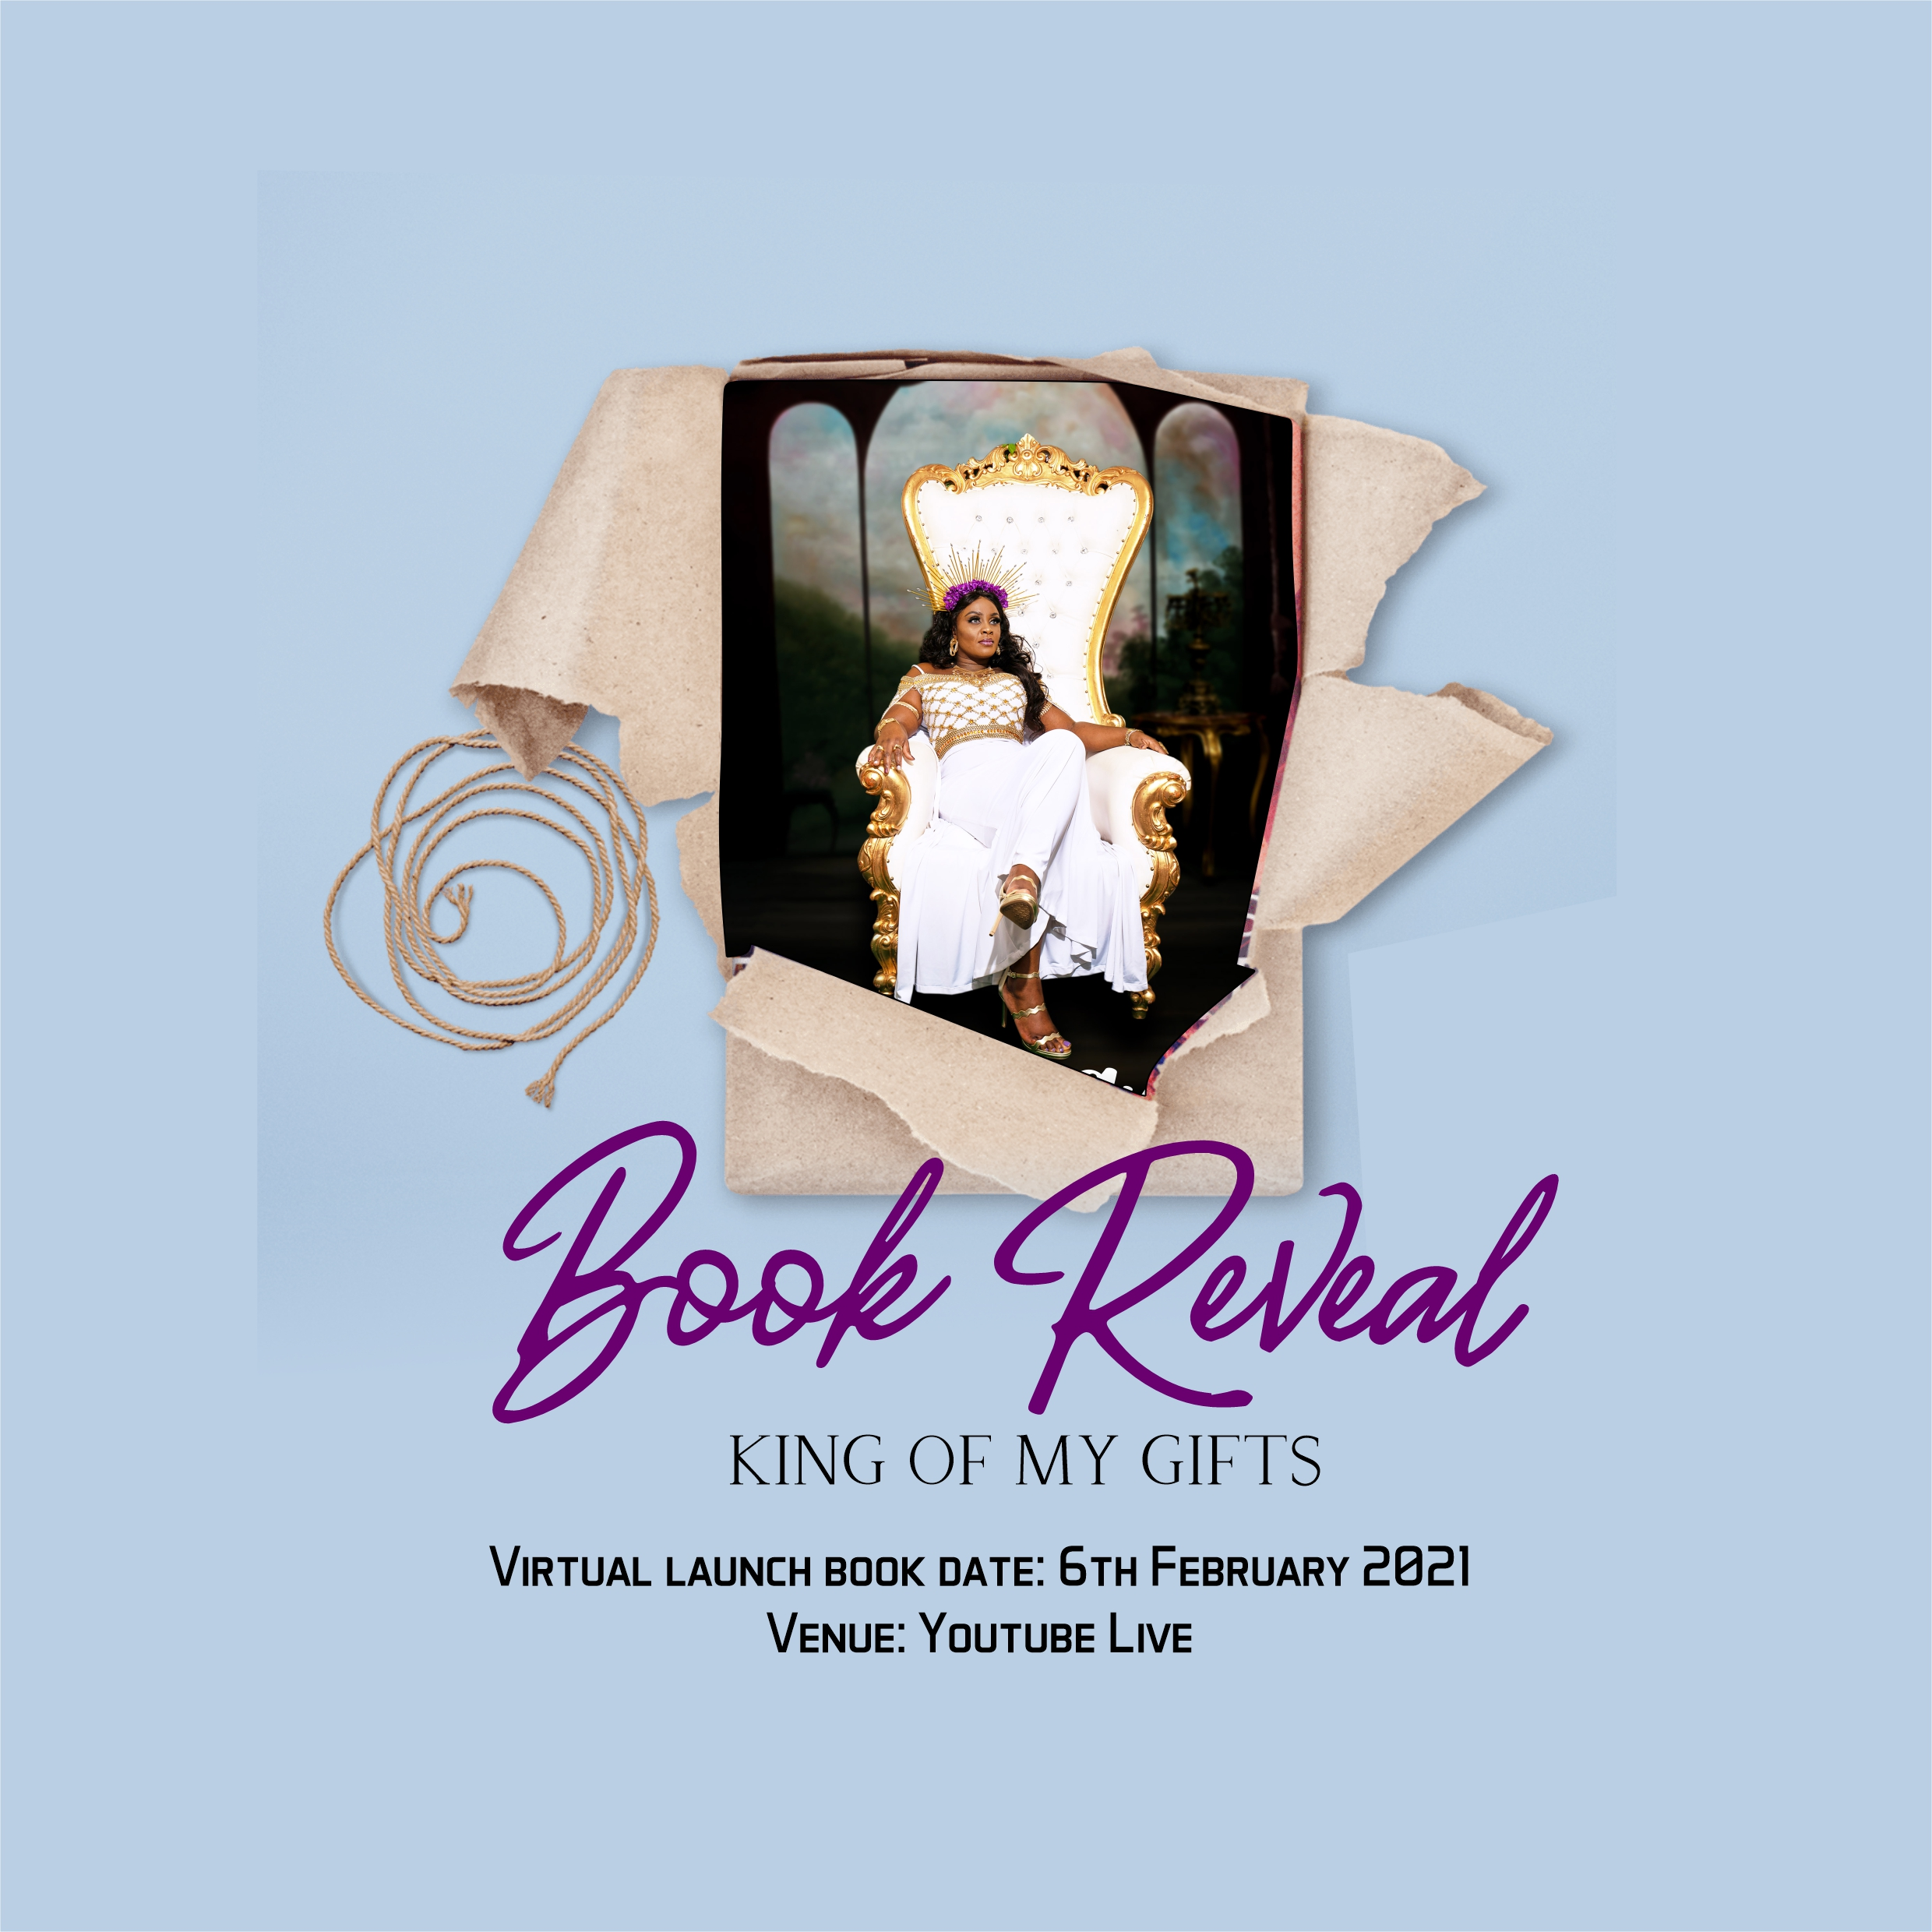 King of My Gifts Virtual Book Launch